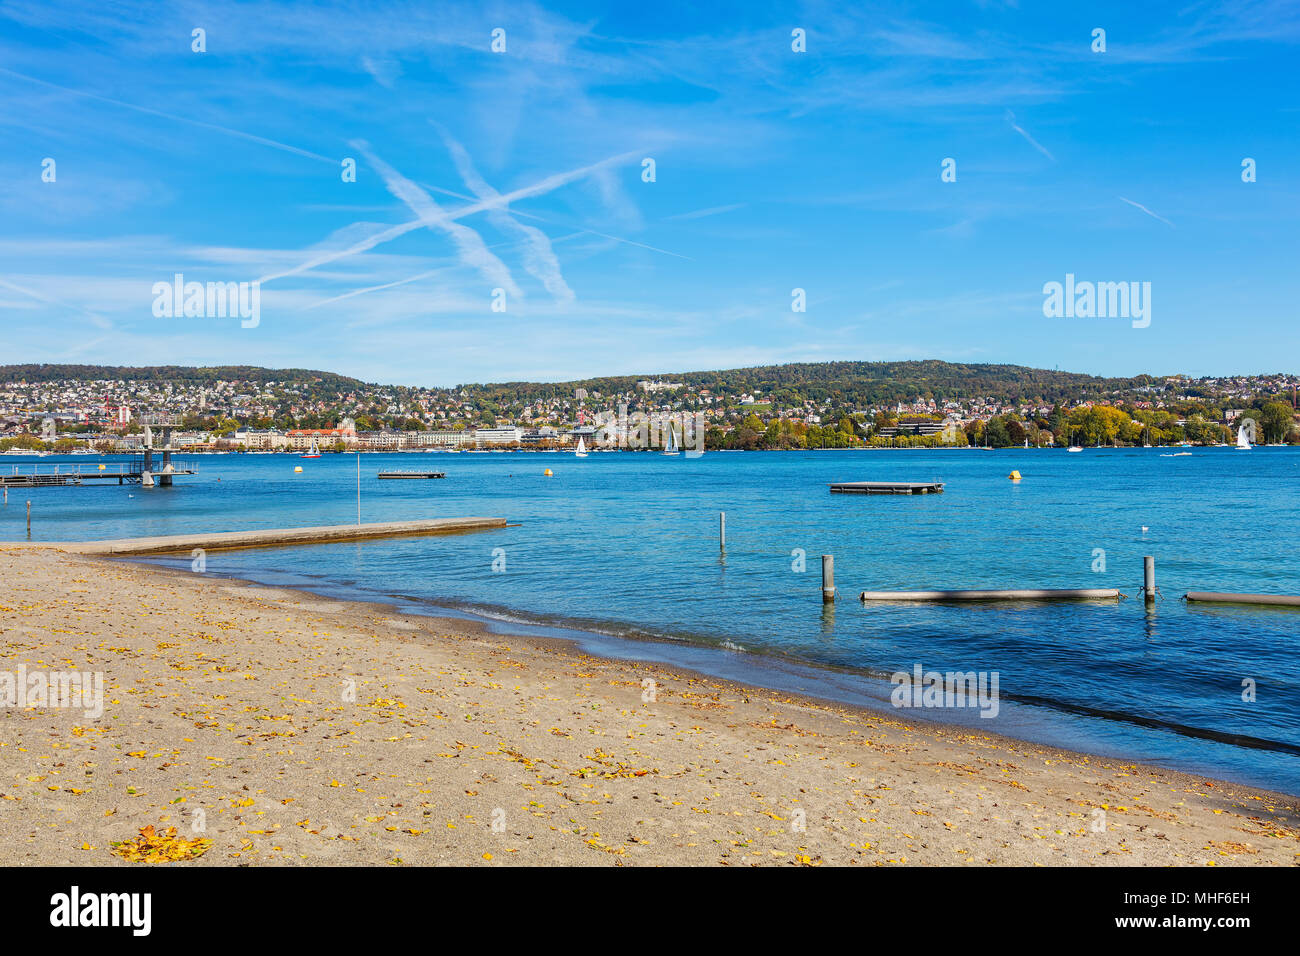 Lake Zurich in Switzerland at the beginning of October, buildings of the city of Zurich in the background. - Stock Image